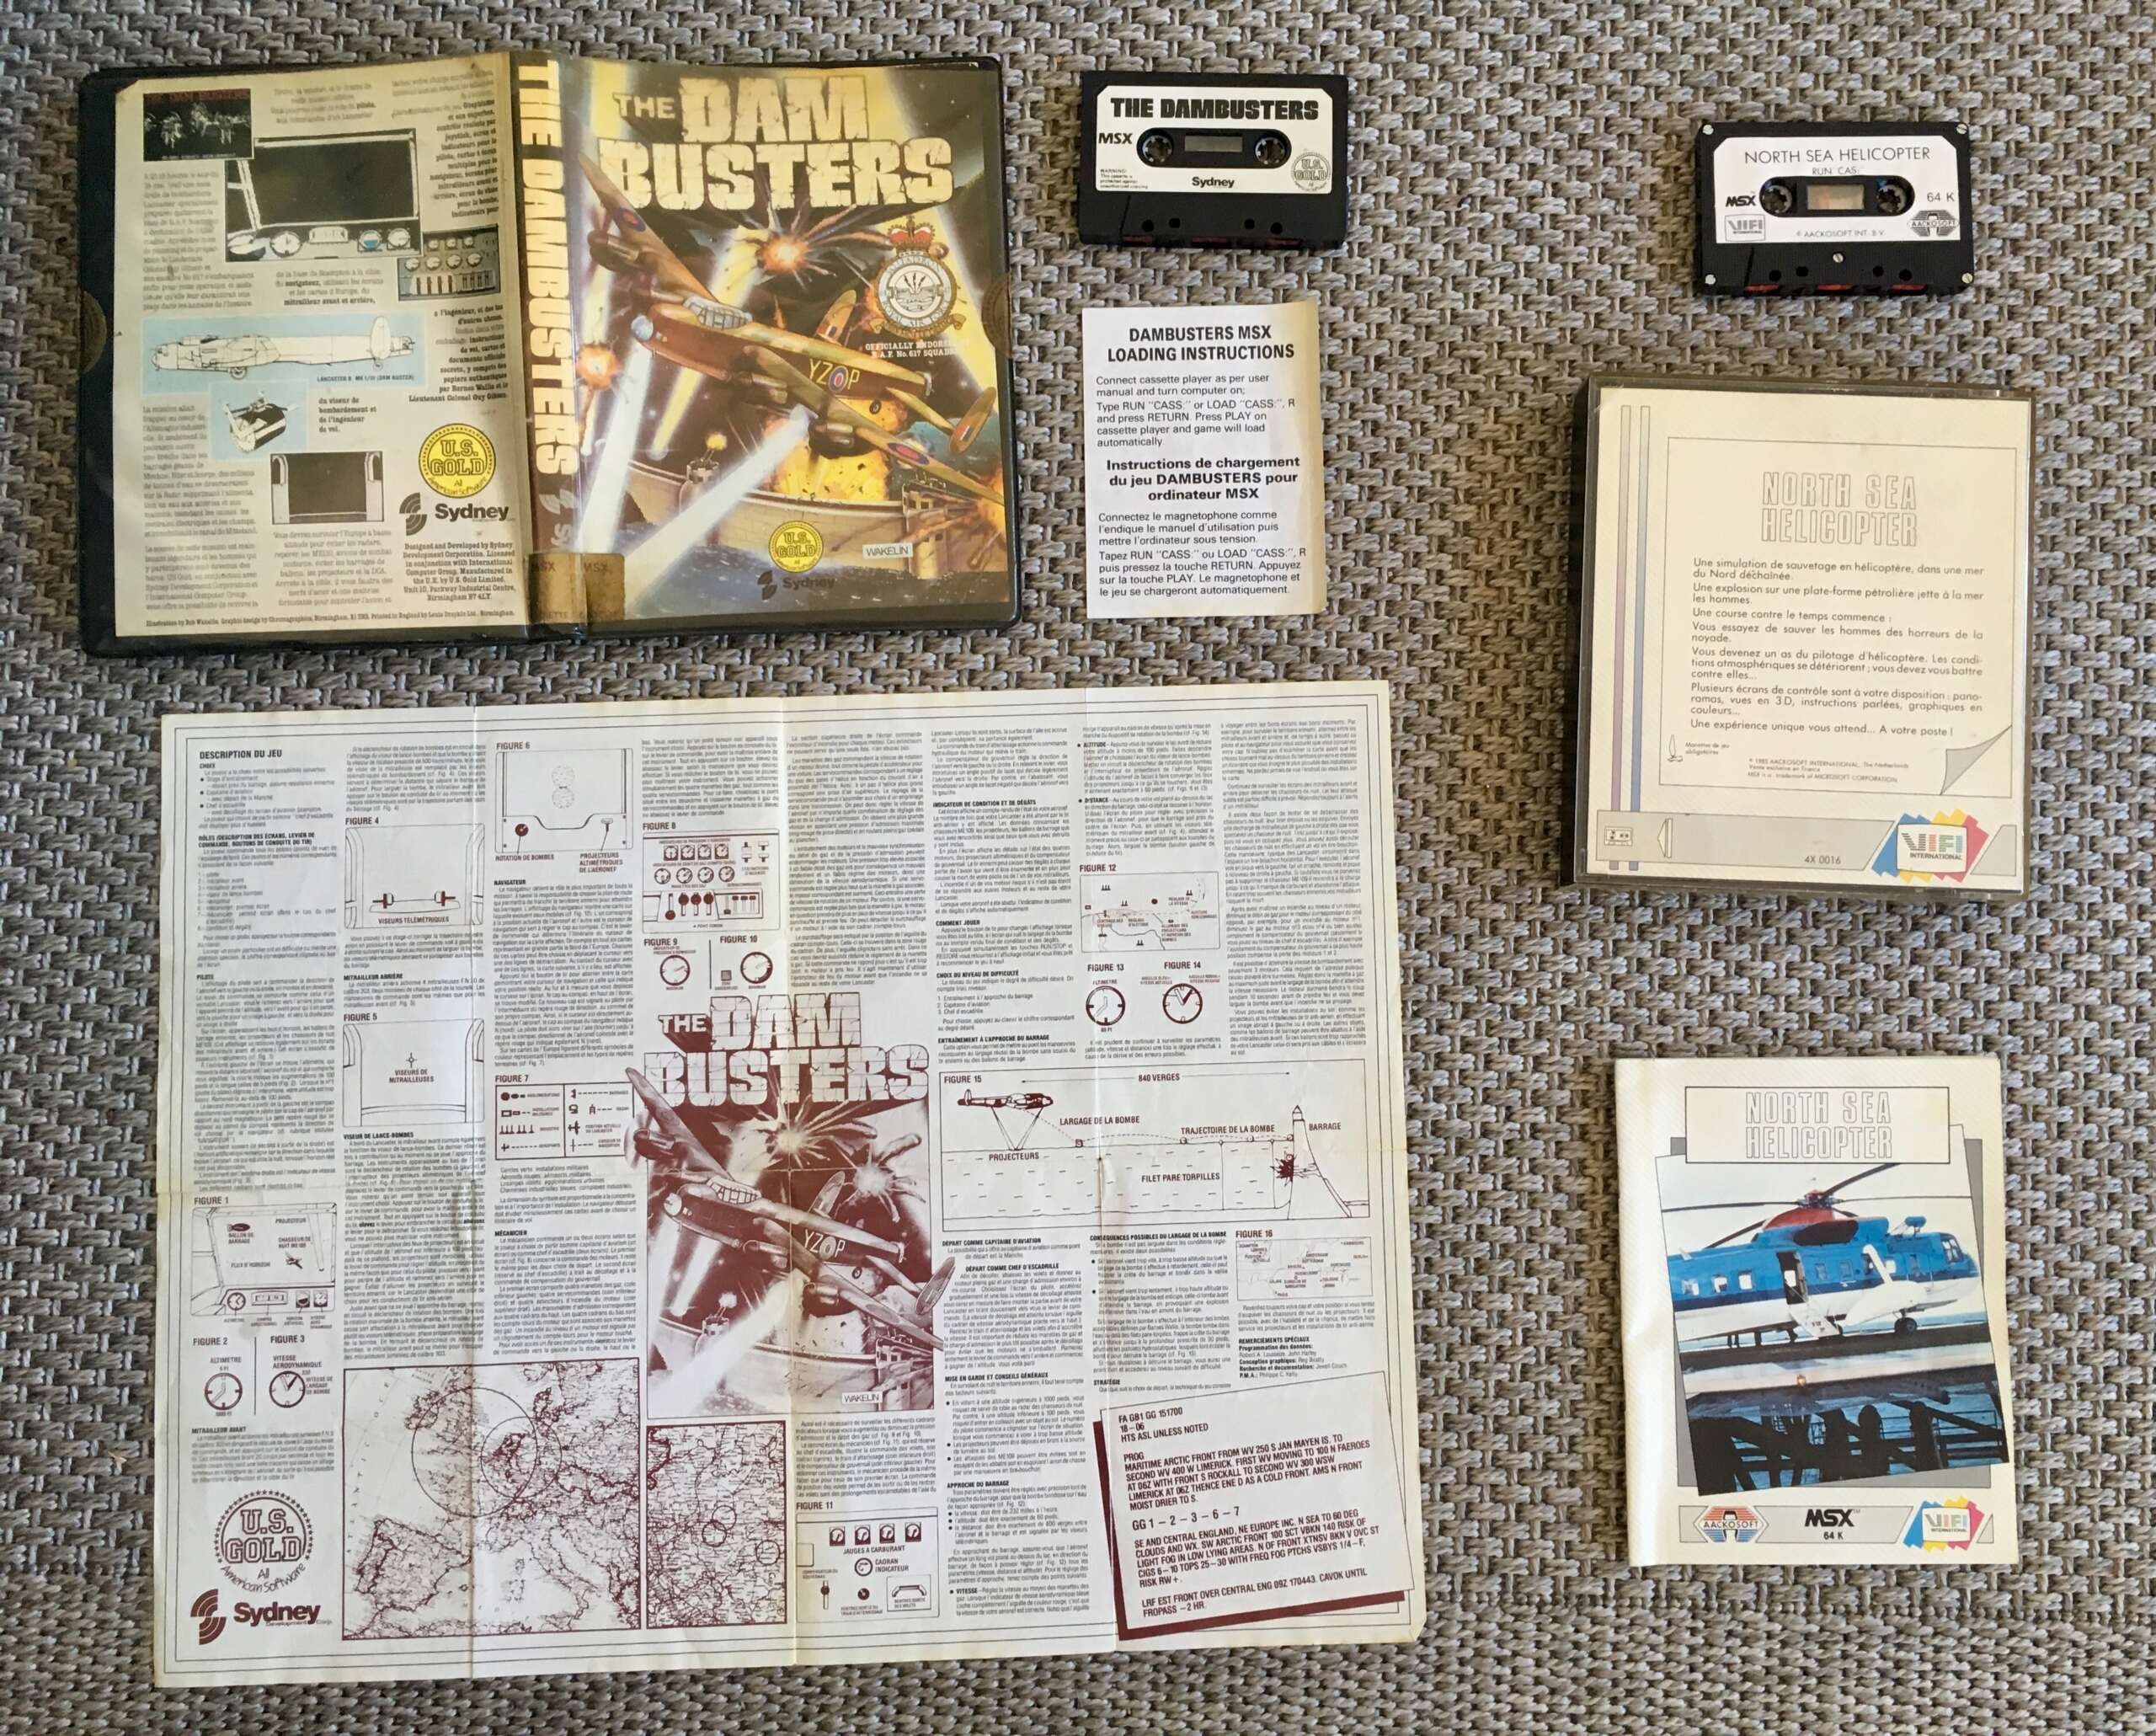 [EST] jeux MSX k7 complets: North Sea Helicopter (FR) + Dam Busters Img_3717